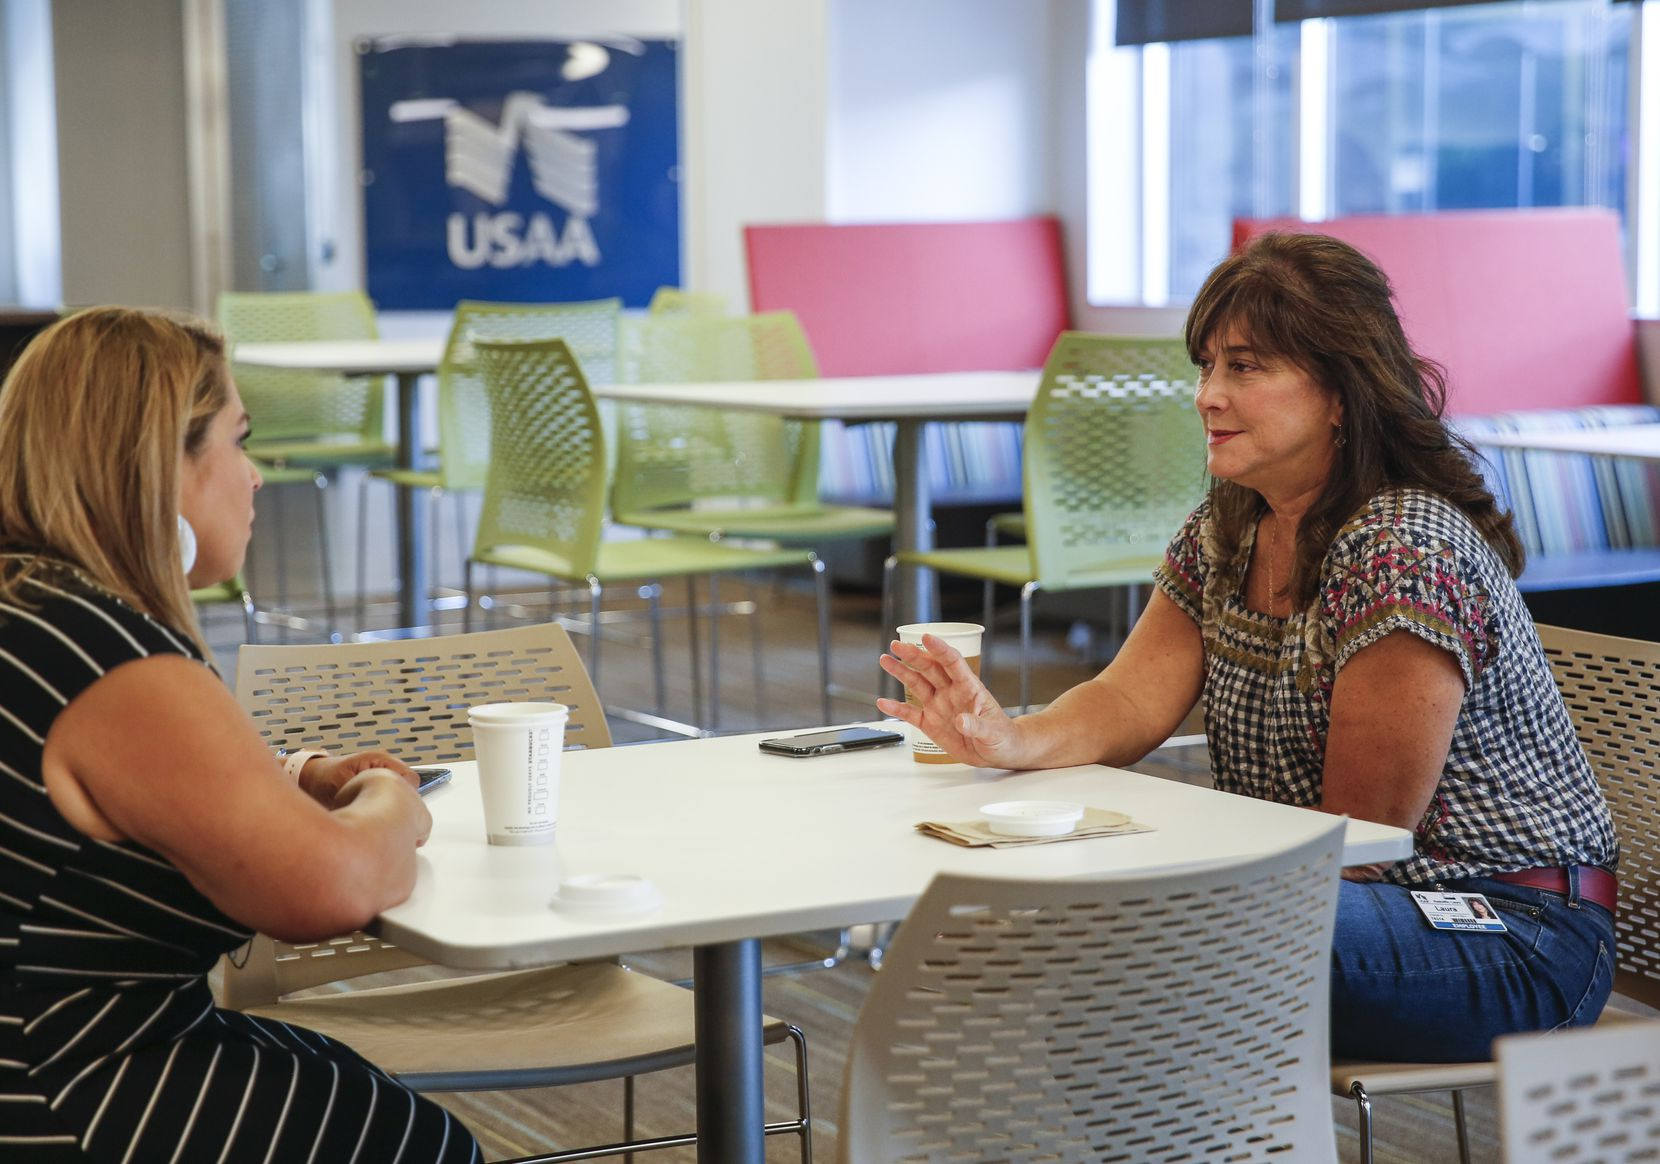 Alycia O'Leary, left, and Laura Radcliffe chatted in a cafeteria area at USAA in August.